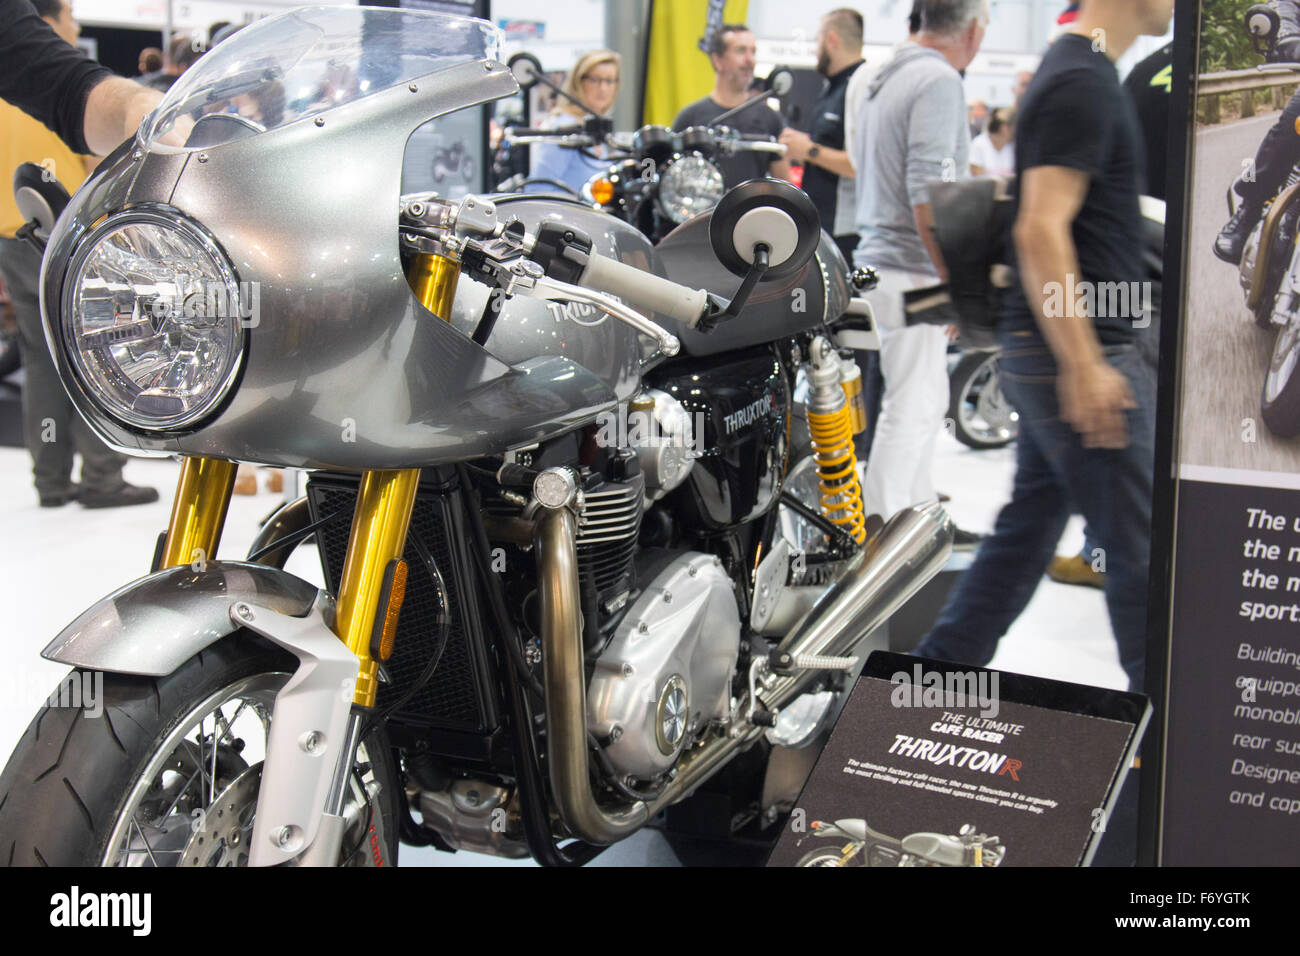 Triumph Thruxton R Cafe Racer At Sydney Motorcycle Show From Olympic ParkHomebushSydneyAustralia Credit Model10 Alamy Live